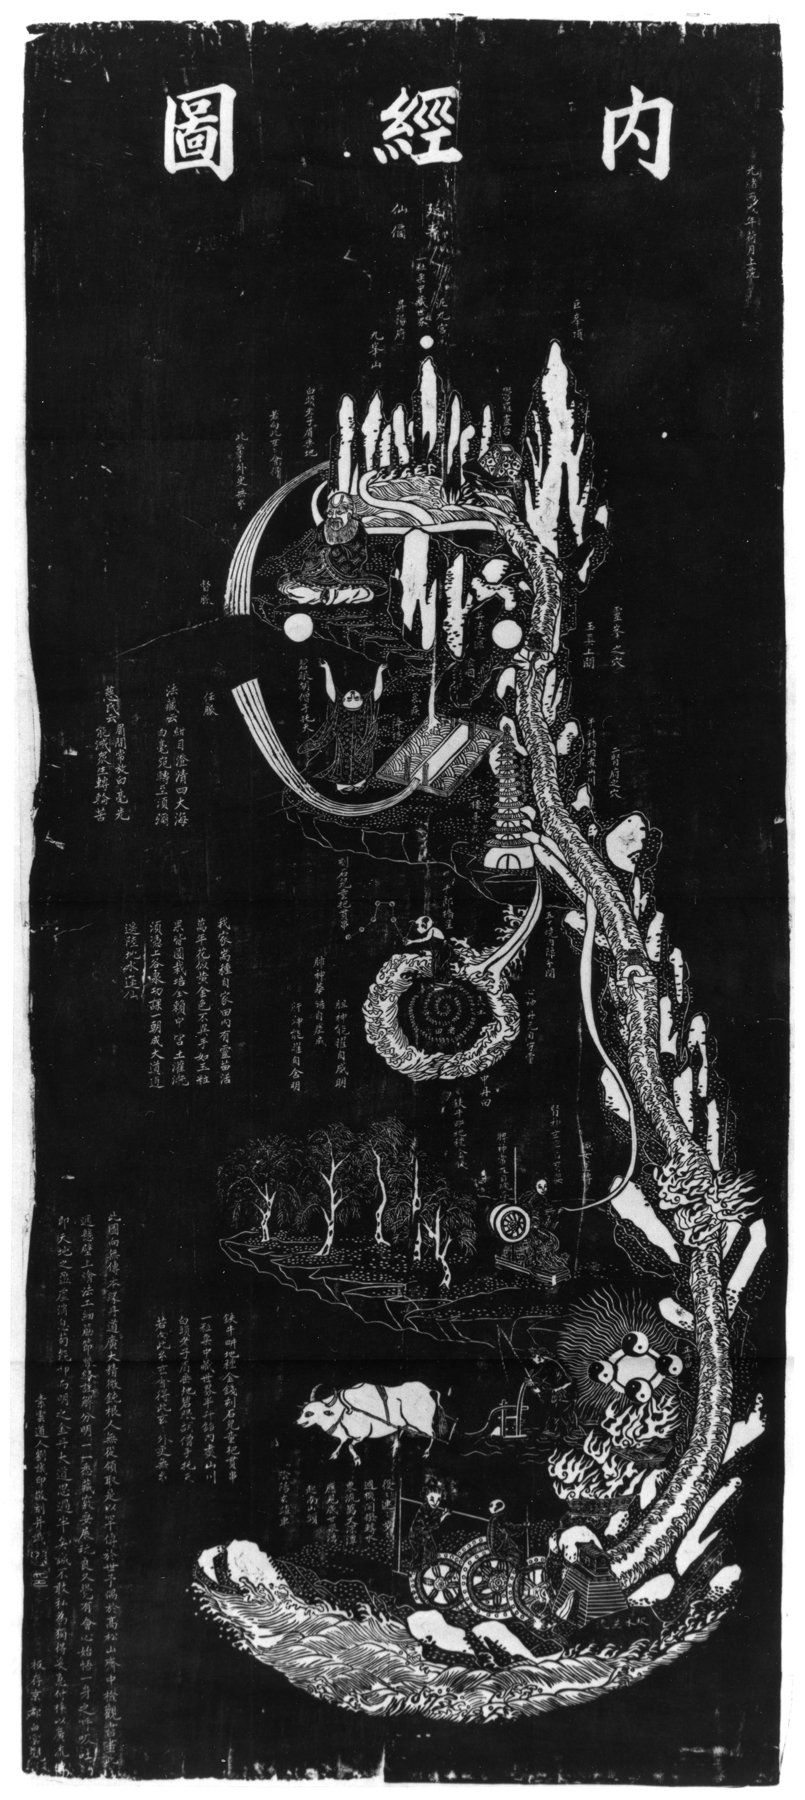 206739625921363ae68cco alchemy pinterest taoism and alchemy literally diagram of the inner scripture original stele from beijing diagram of internal pathways of man daoist microsomography of inner alchemy biocorpaavc Images